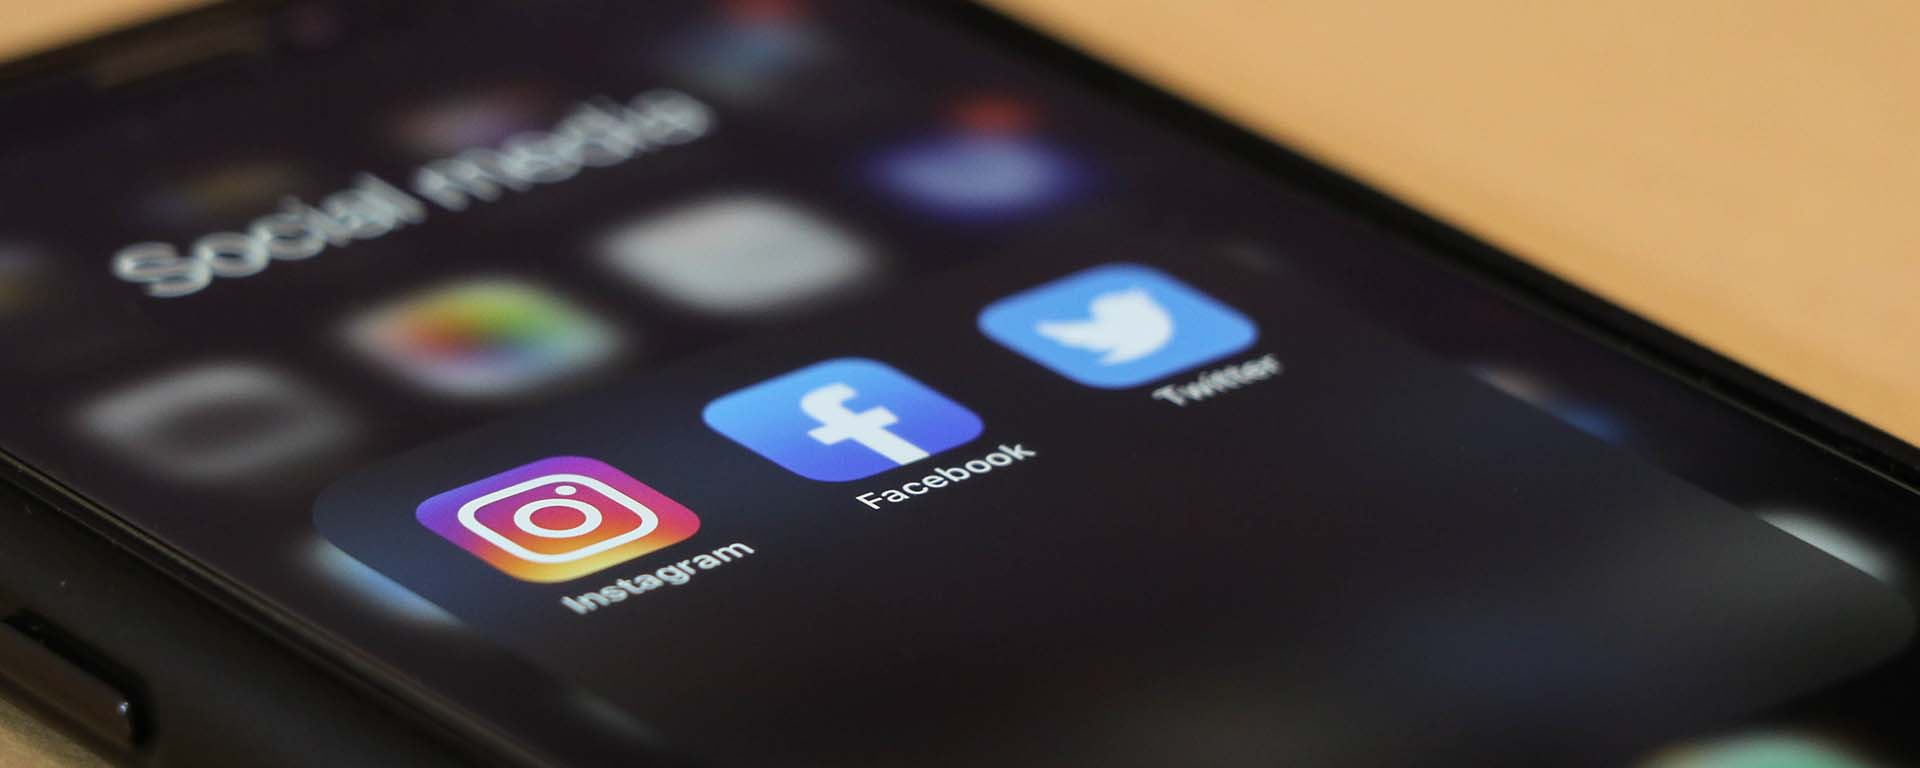 A mobile phone with Instagram, Facebook and Twitter apps showing on the homepage